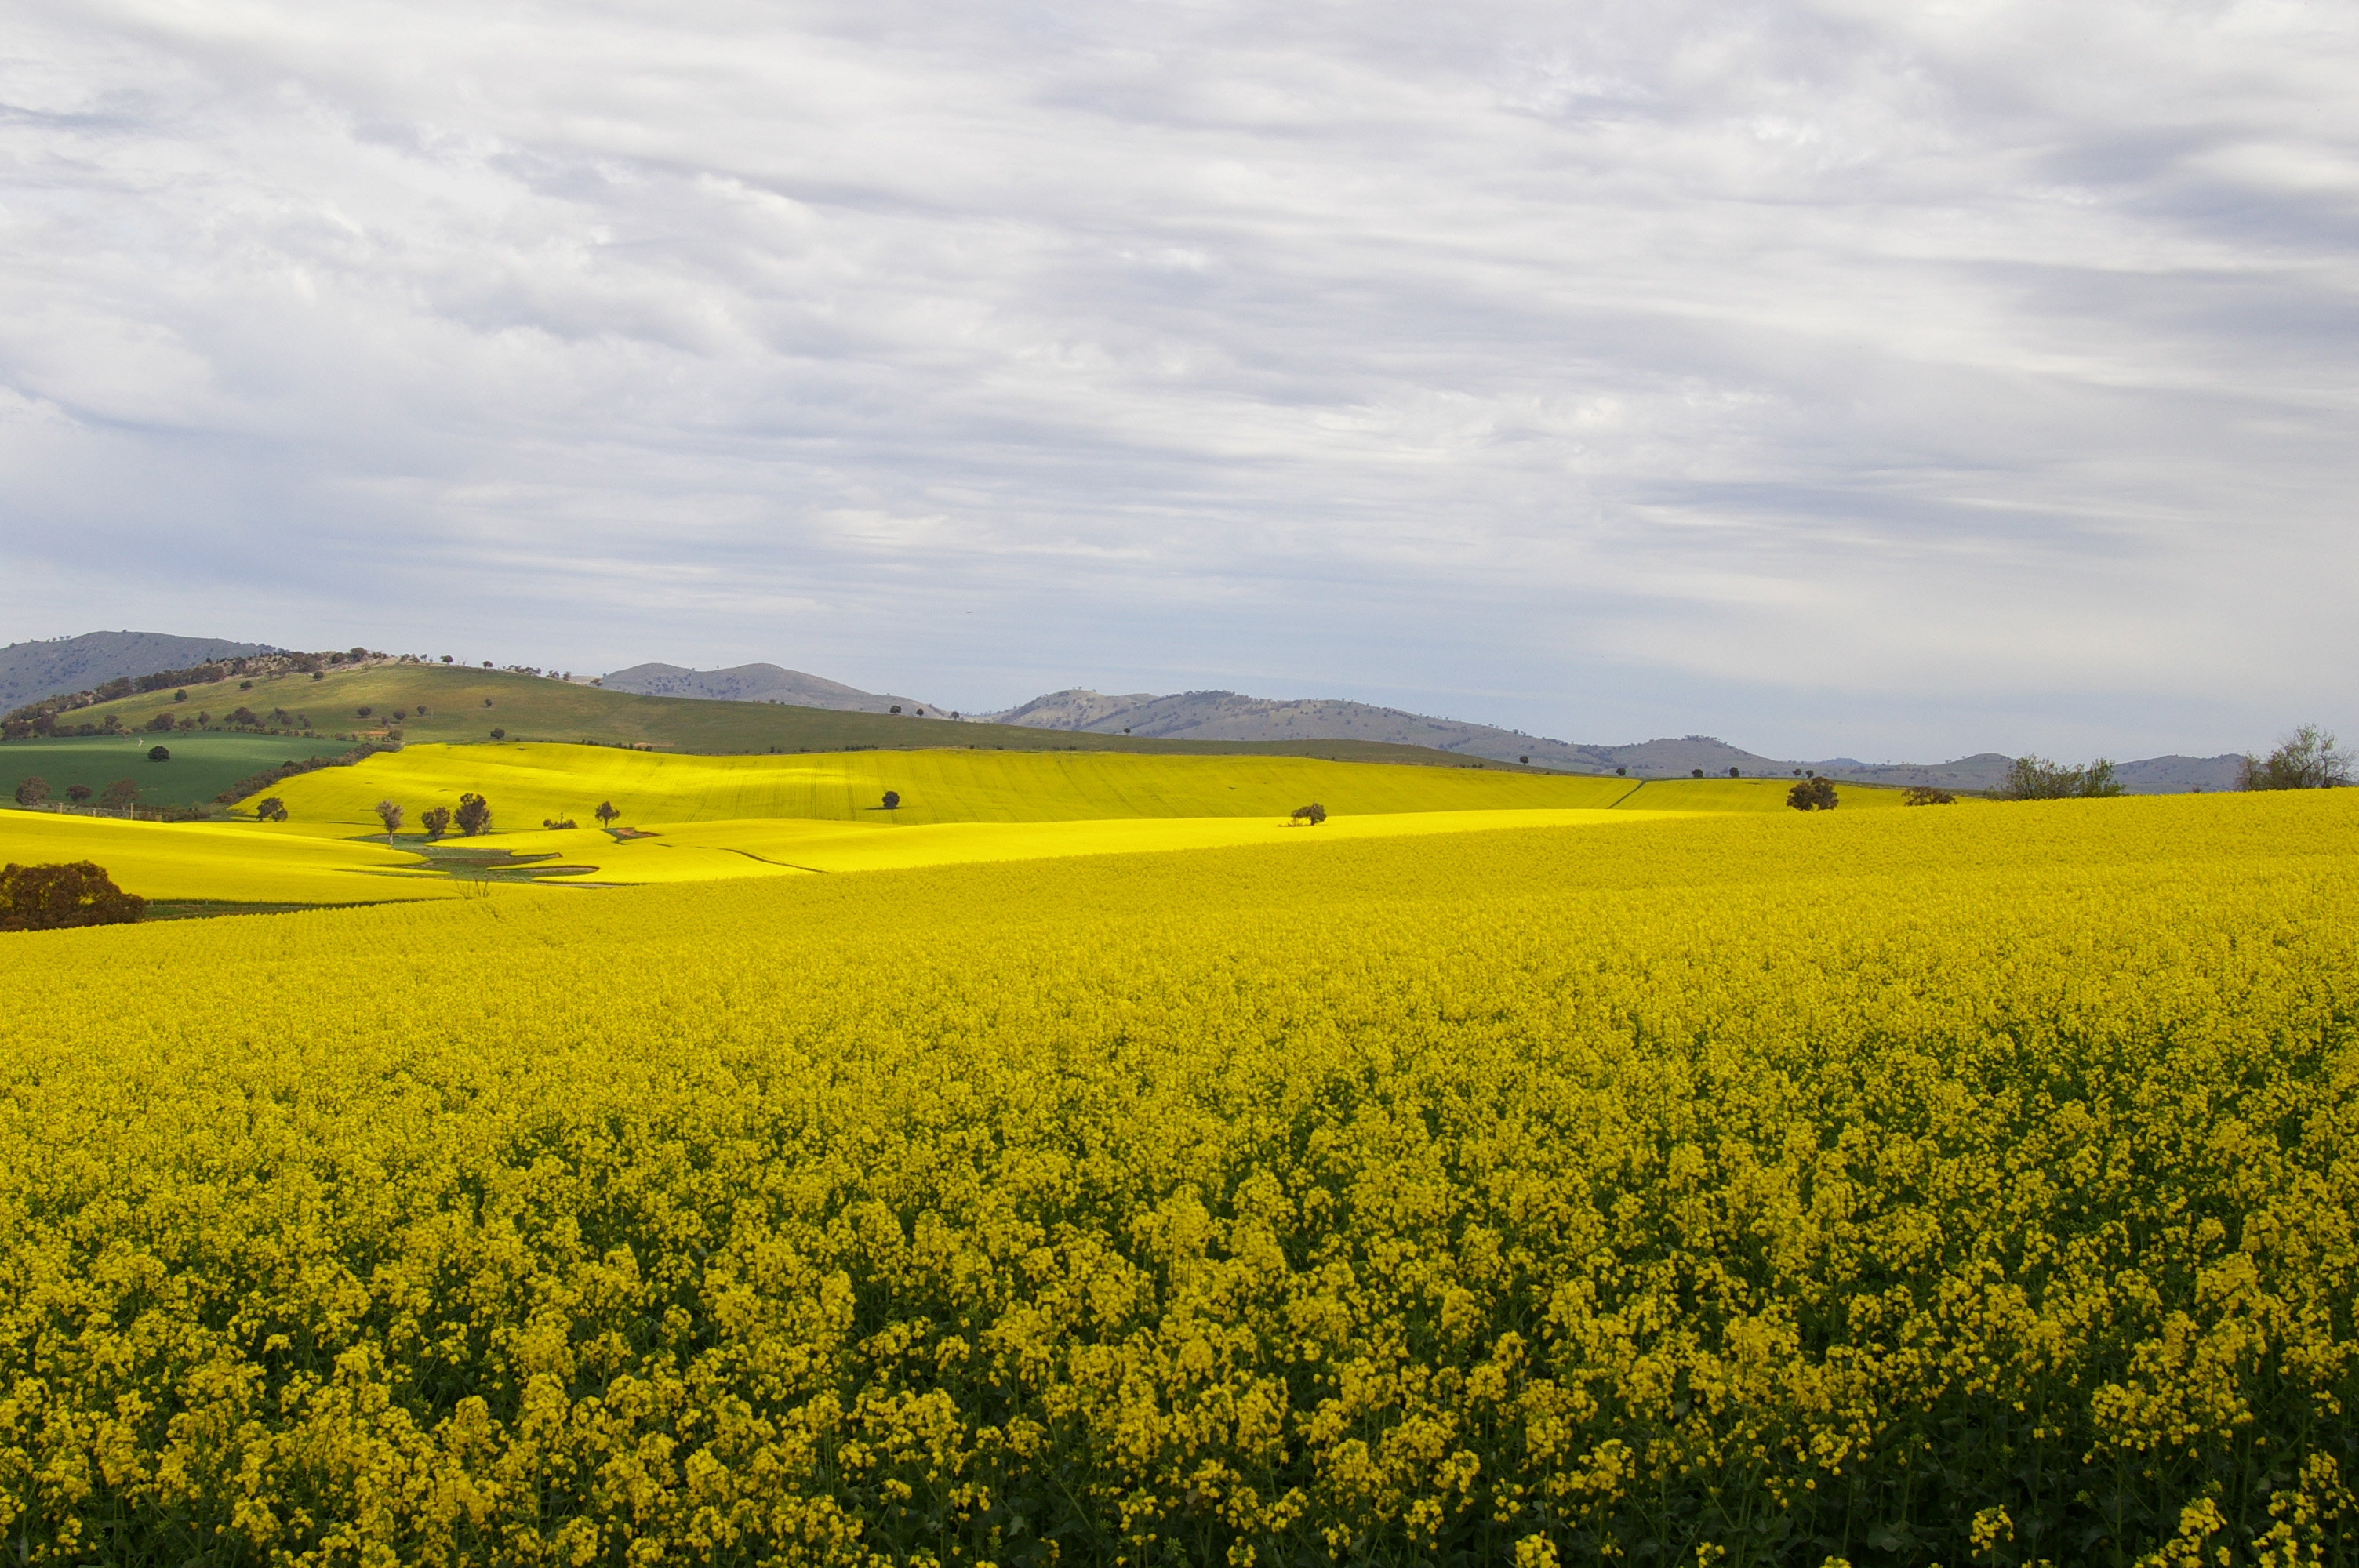 landscape photo of fields and hills covered in canola in full bright yellow bloom, under a grey-blue cloudy sky.